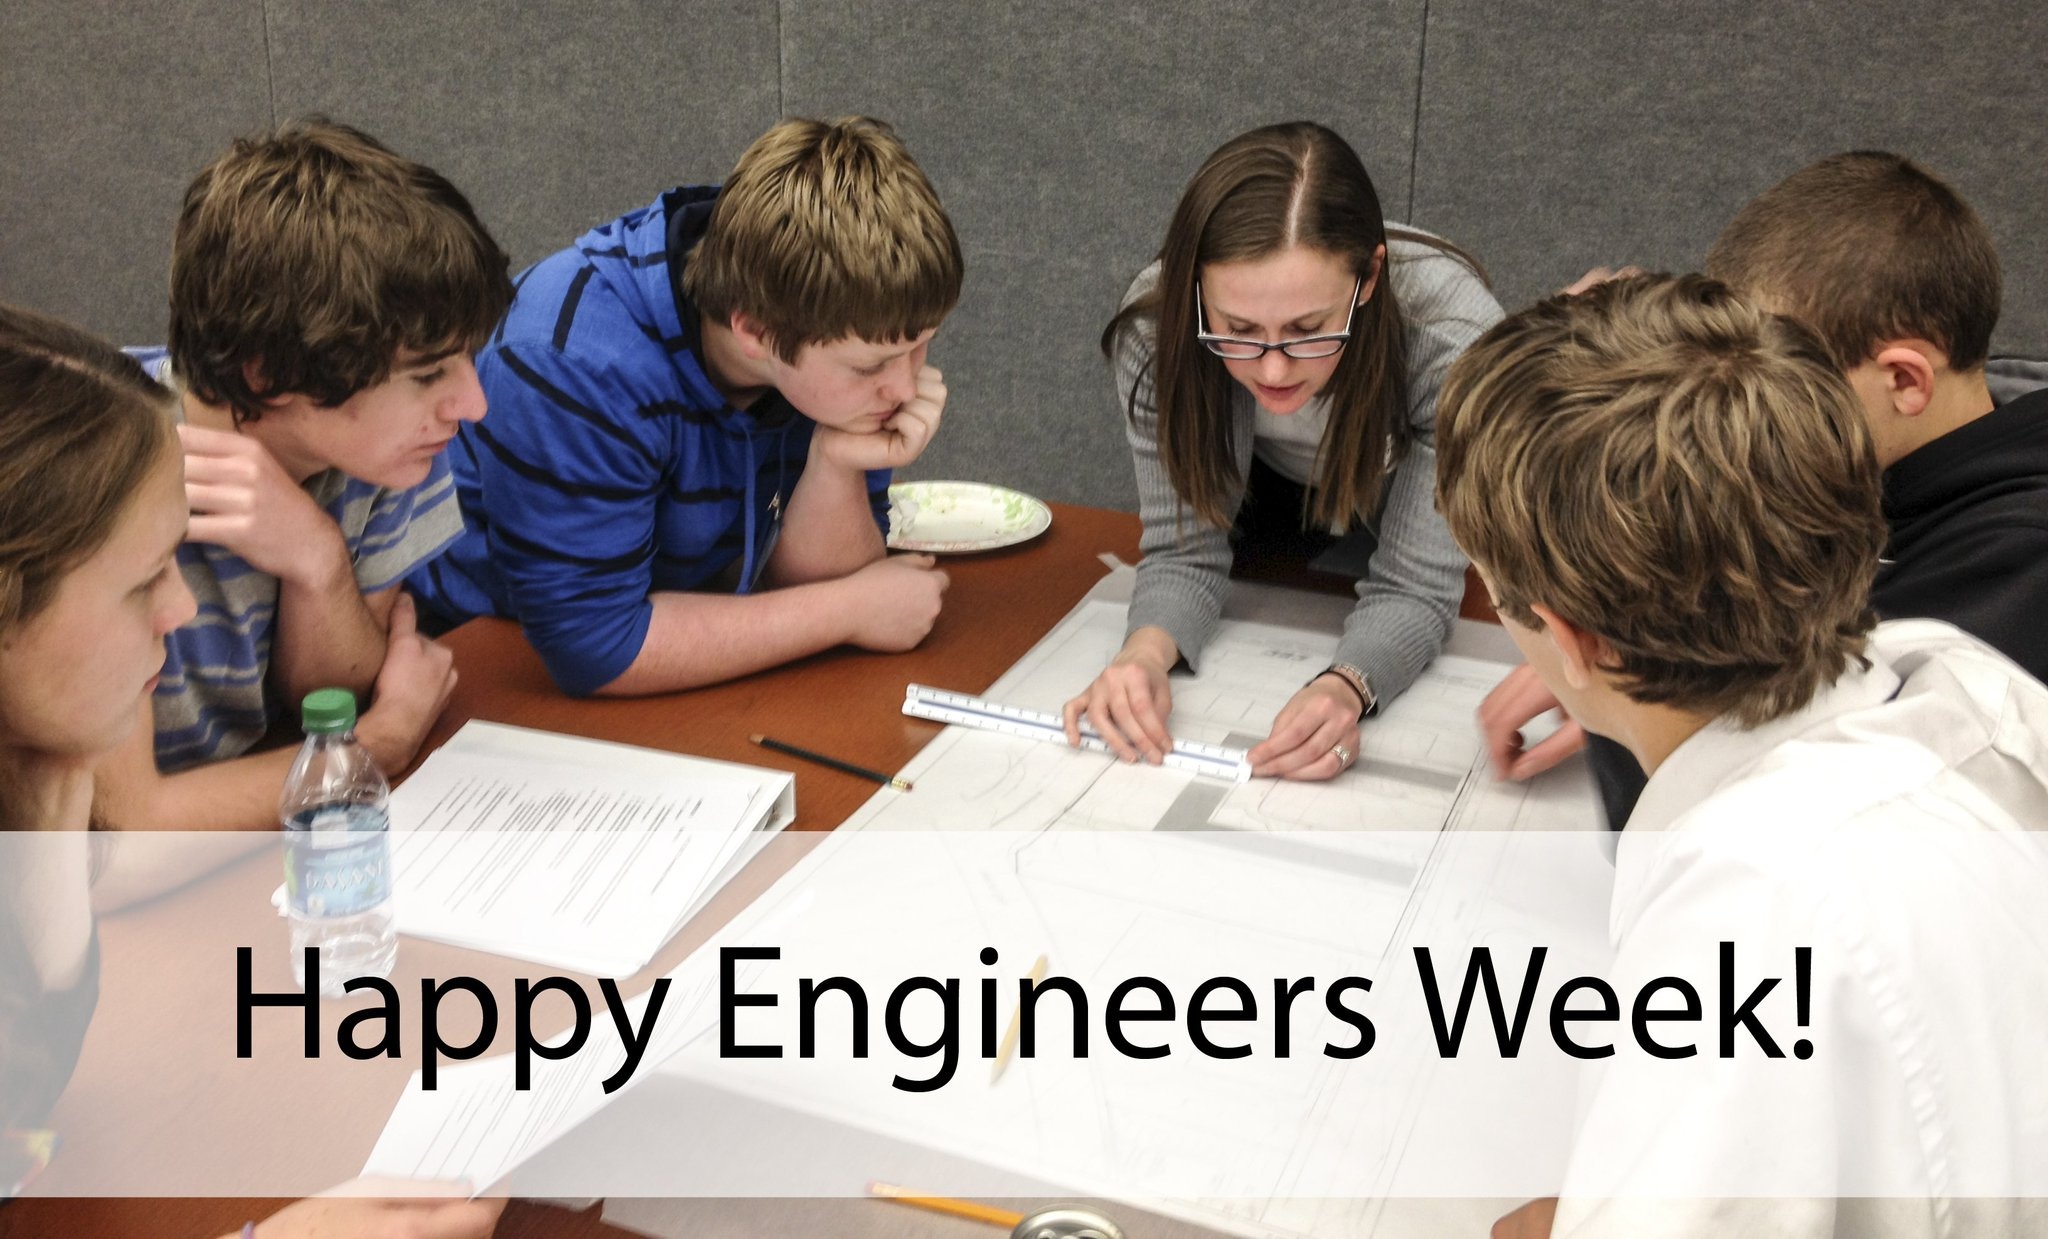 Happy #EngineersWeek to all the current and future #engineers out there! https://t.co/EHKZdbzzKf